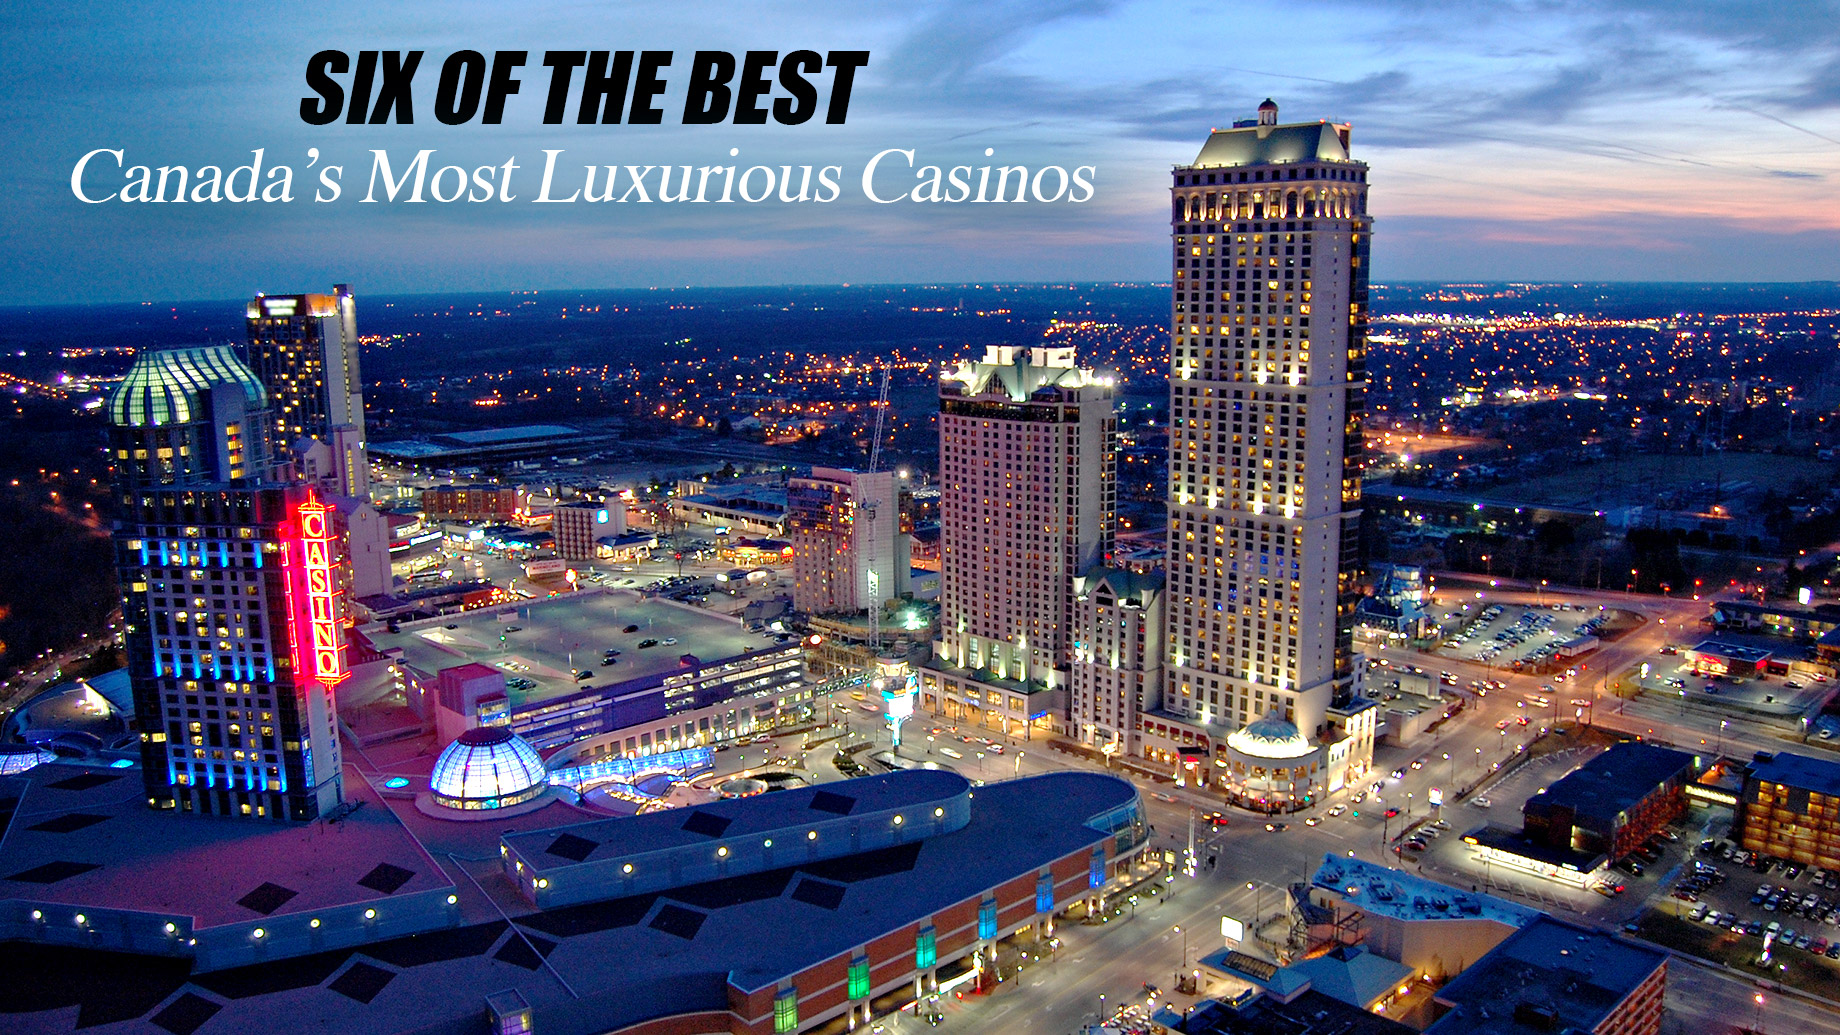 Six of the Best - Canada's Most Luxurious Casinos